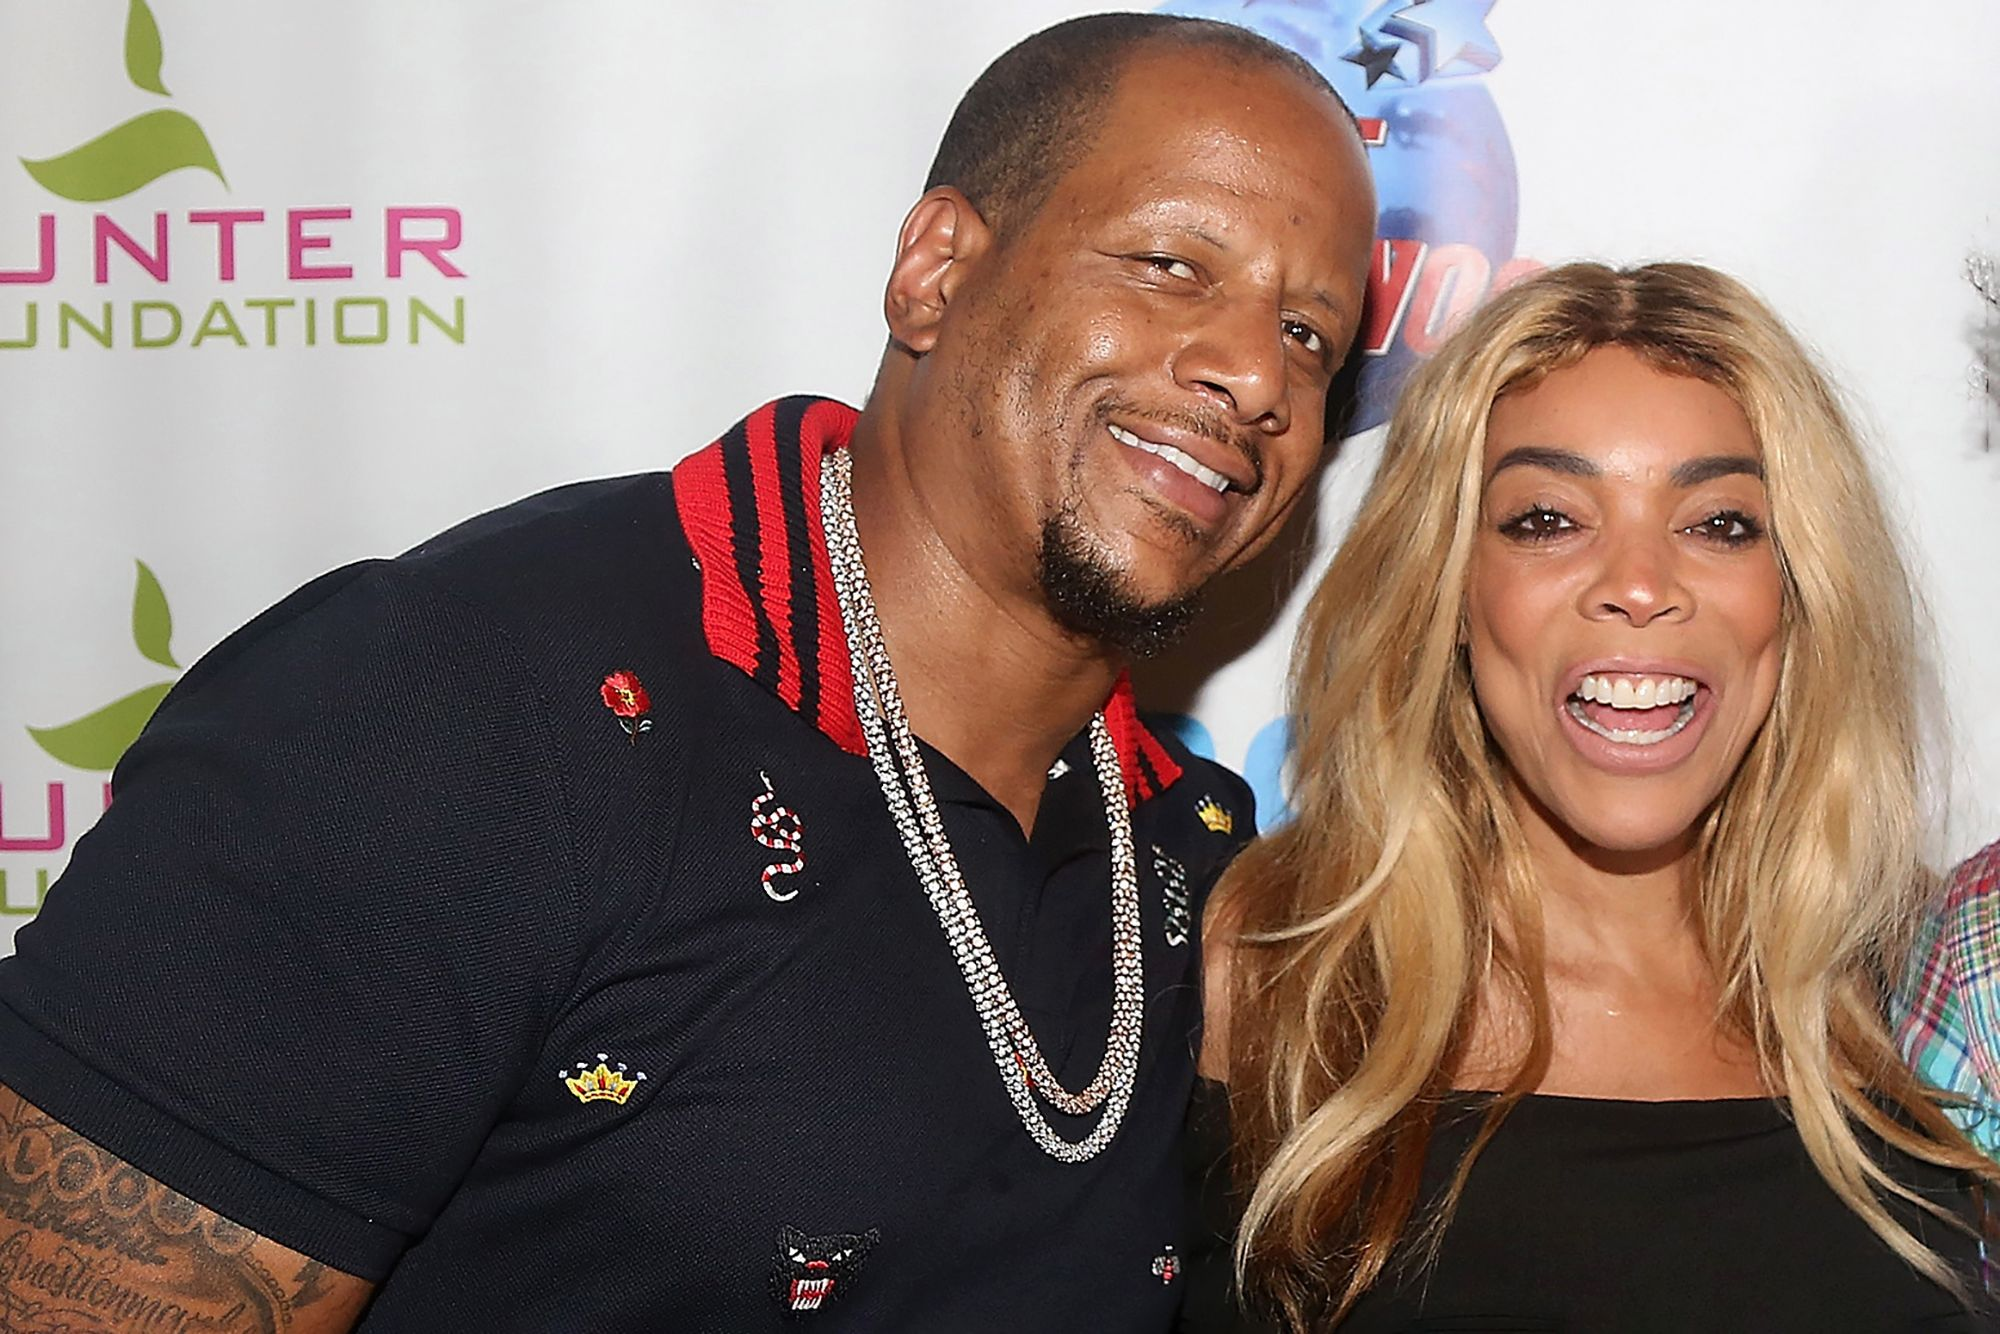 Wendy Williams Opens Up About Her Divorce